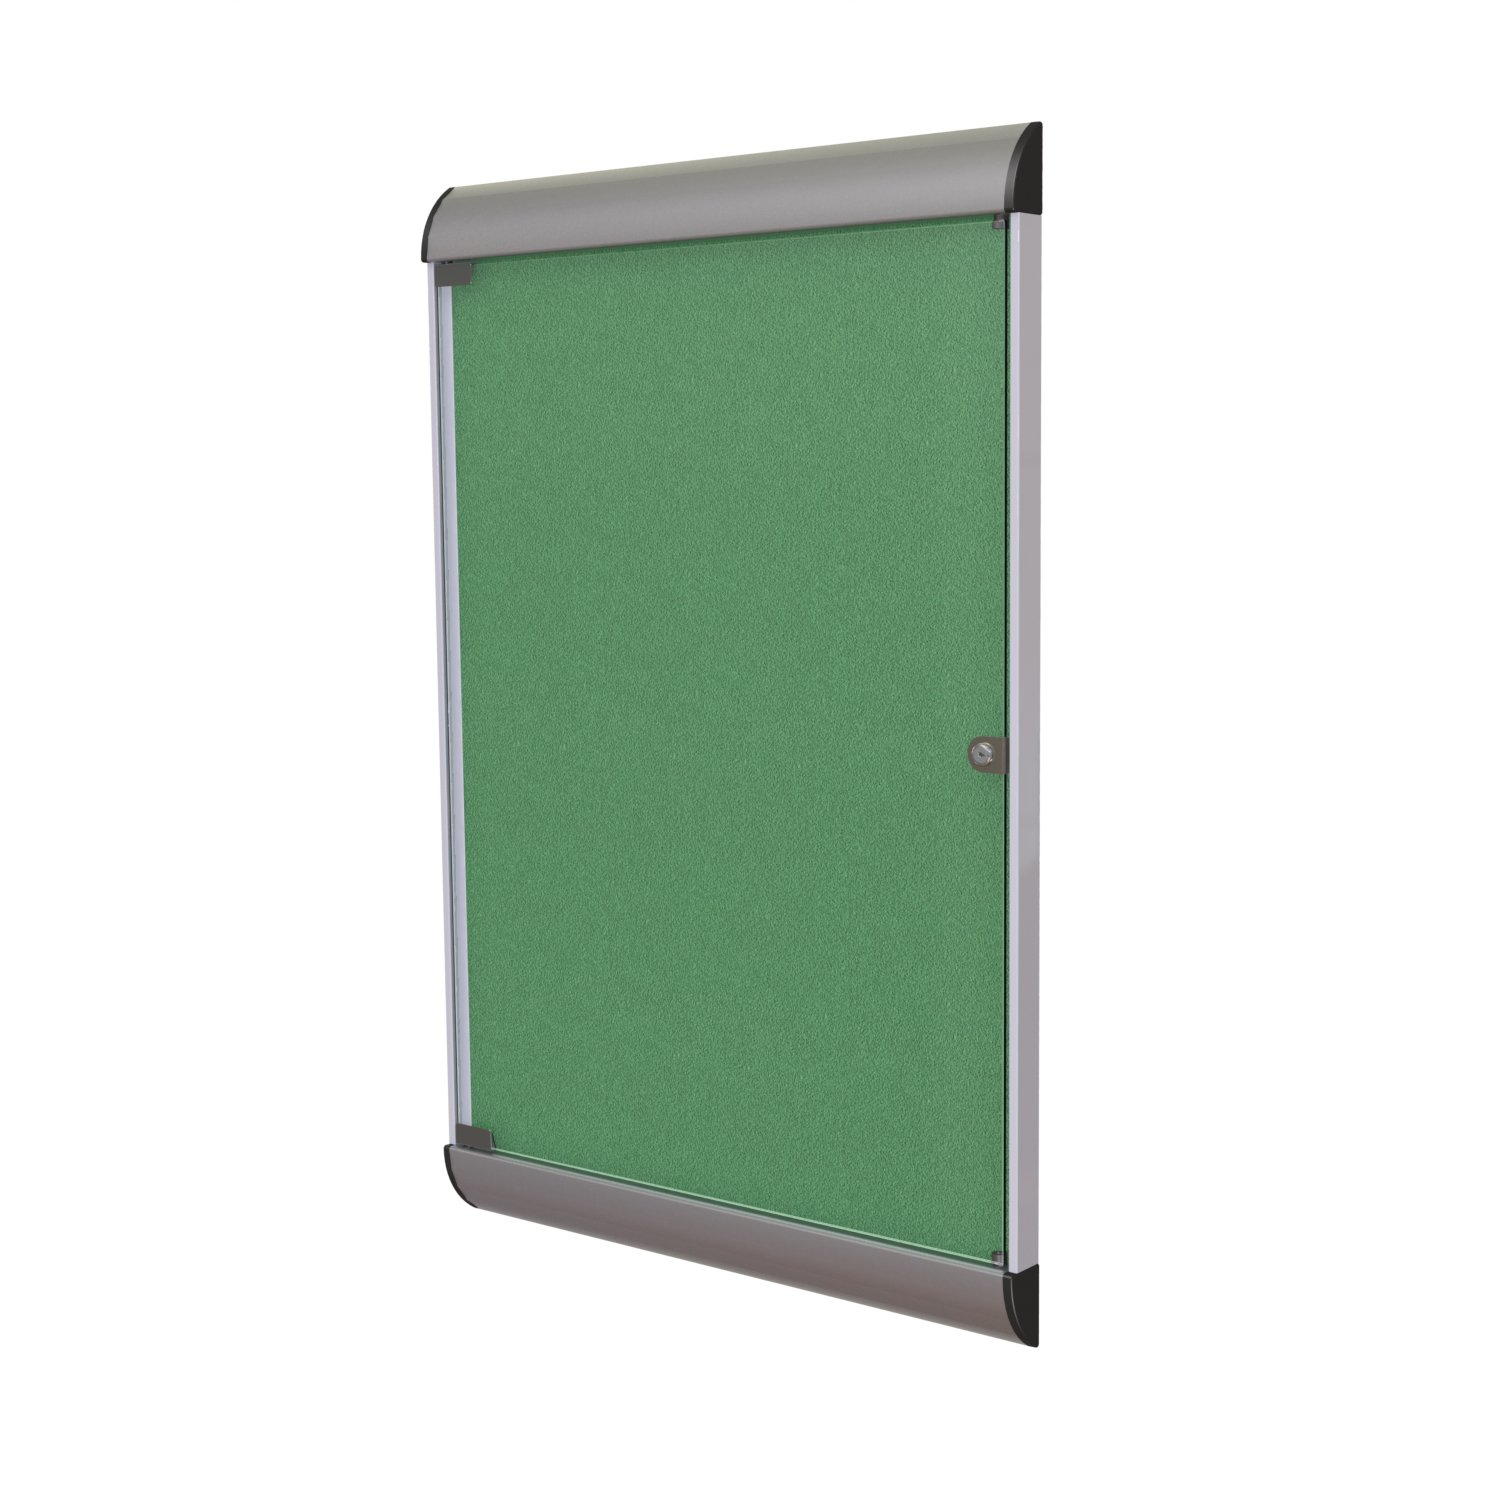 Ghent 42-1/8 x 27-3/4 Inches 1-Door Silhouette Enclosed Bulletin Board, Satin and Black Frame with Vinyl Fabric, Spruce , Made in the USA